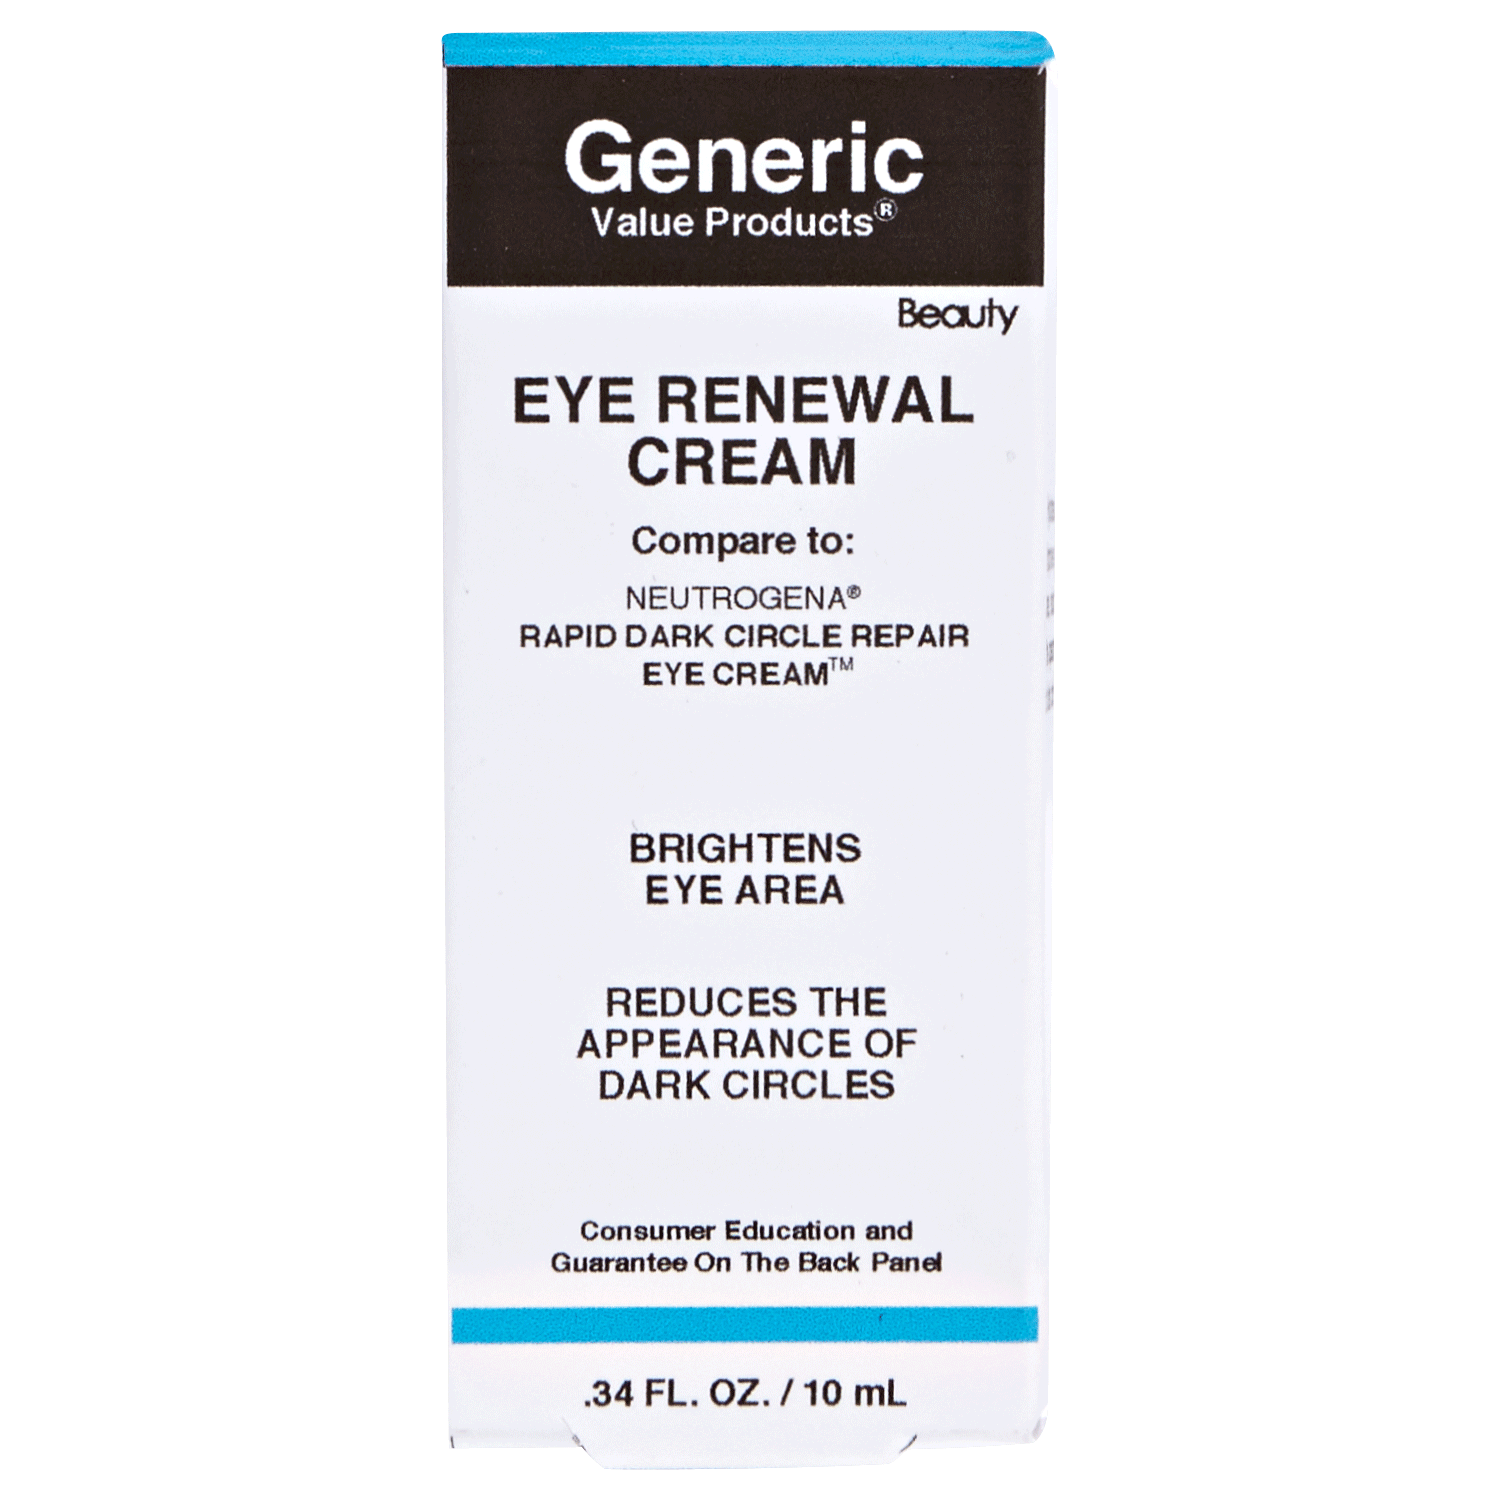 Advanced Eye Renewal Cream Compare to Neutrogena Rapid Dark Circle Repair Eye Cream